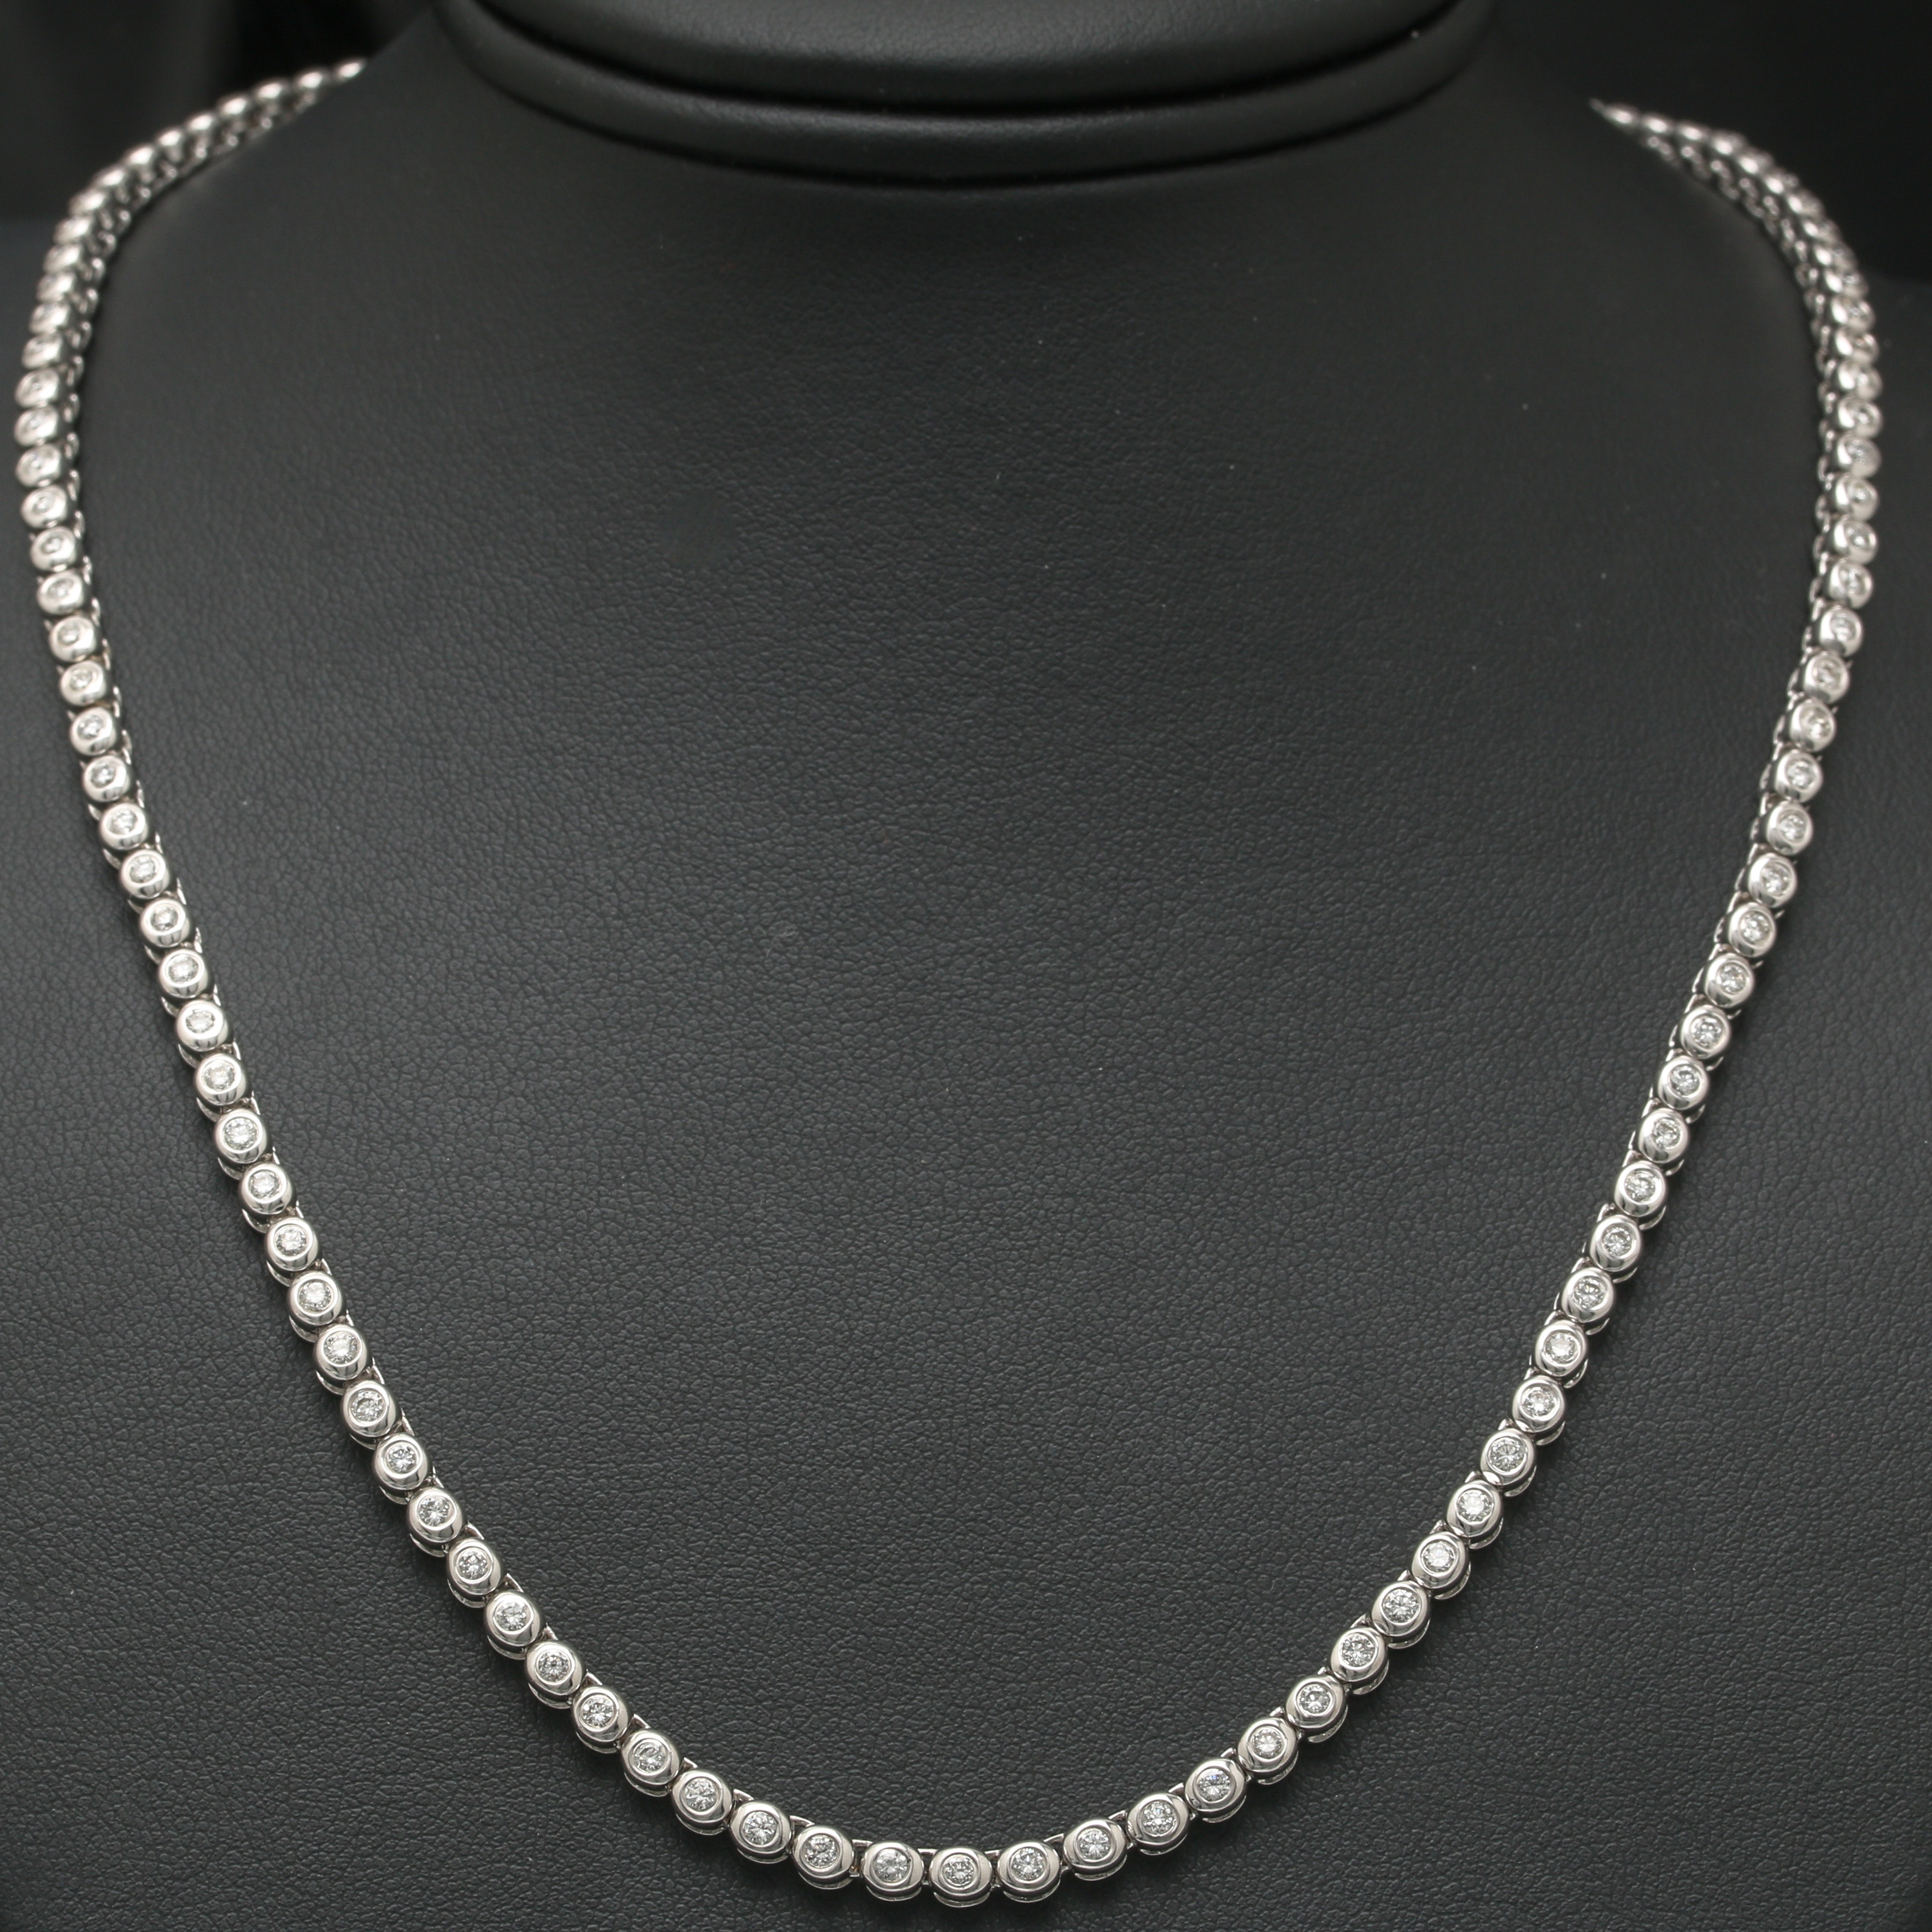 14K White Gold 3.51 CTW Diamond Necklace